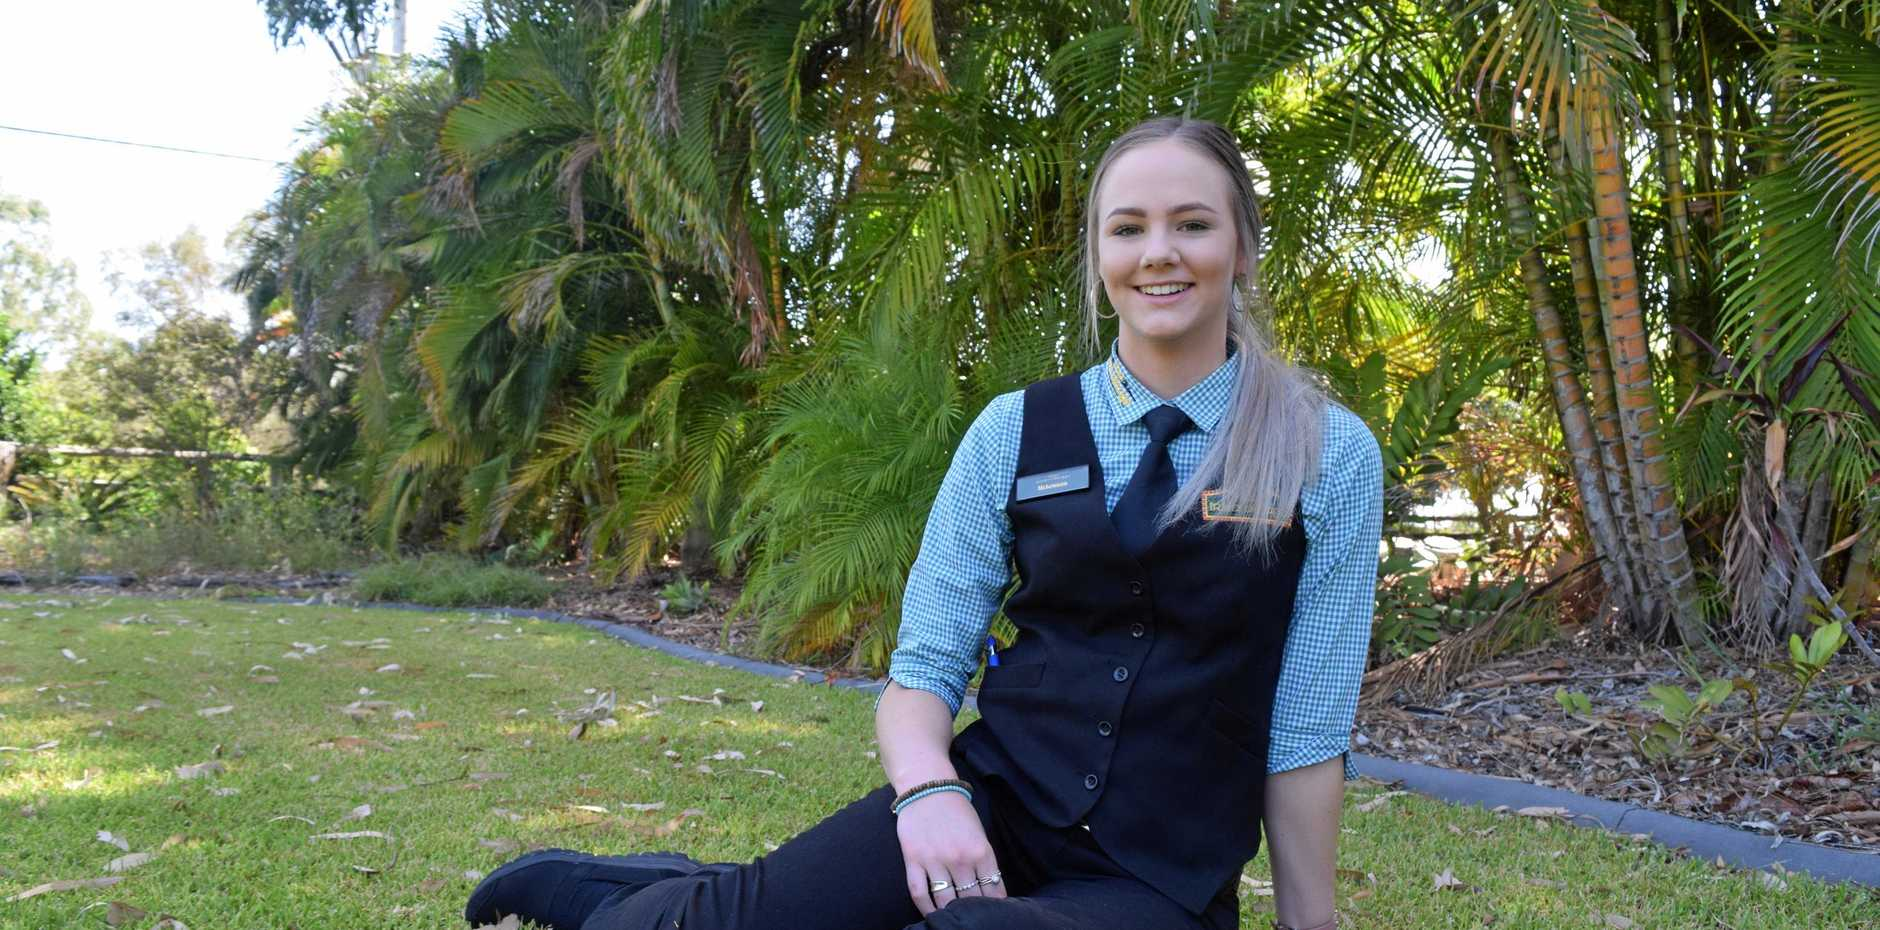 Emerald's McKennan McIndoe was has been awarded a $22,500 scholarship to the International College of Hotel Management in South Australia.